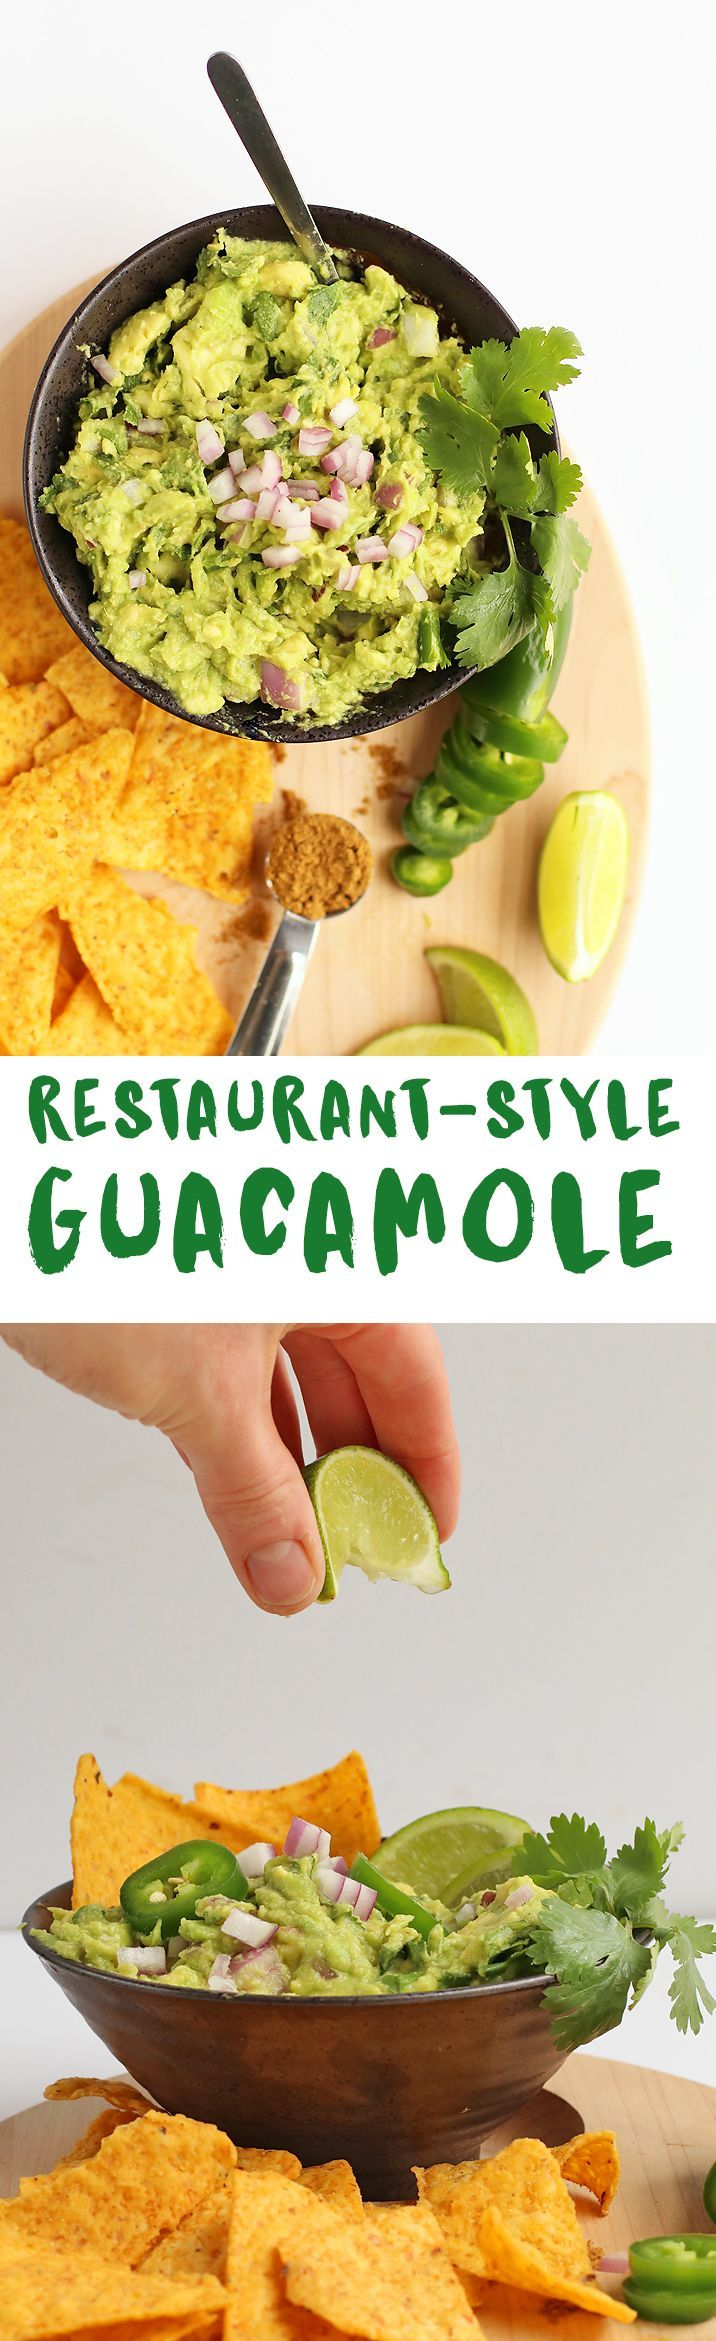 Get your avocado fix with this Easy Guacamole made with ripe avocados, fresh herbs and spices, and lots of flavor. Serve with chips.